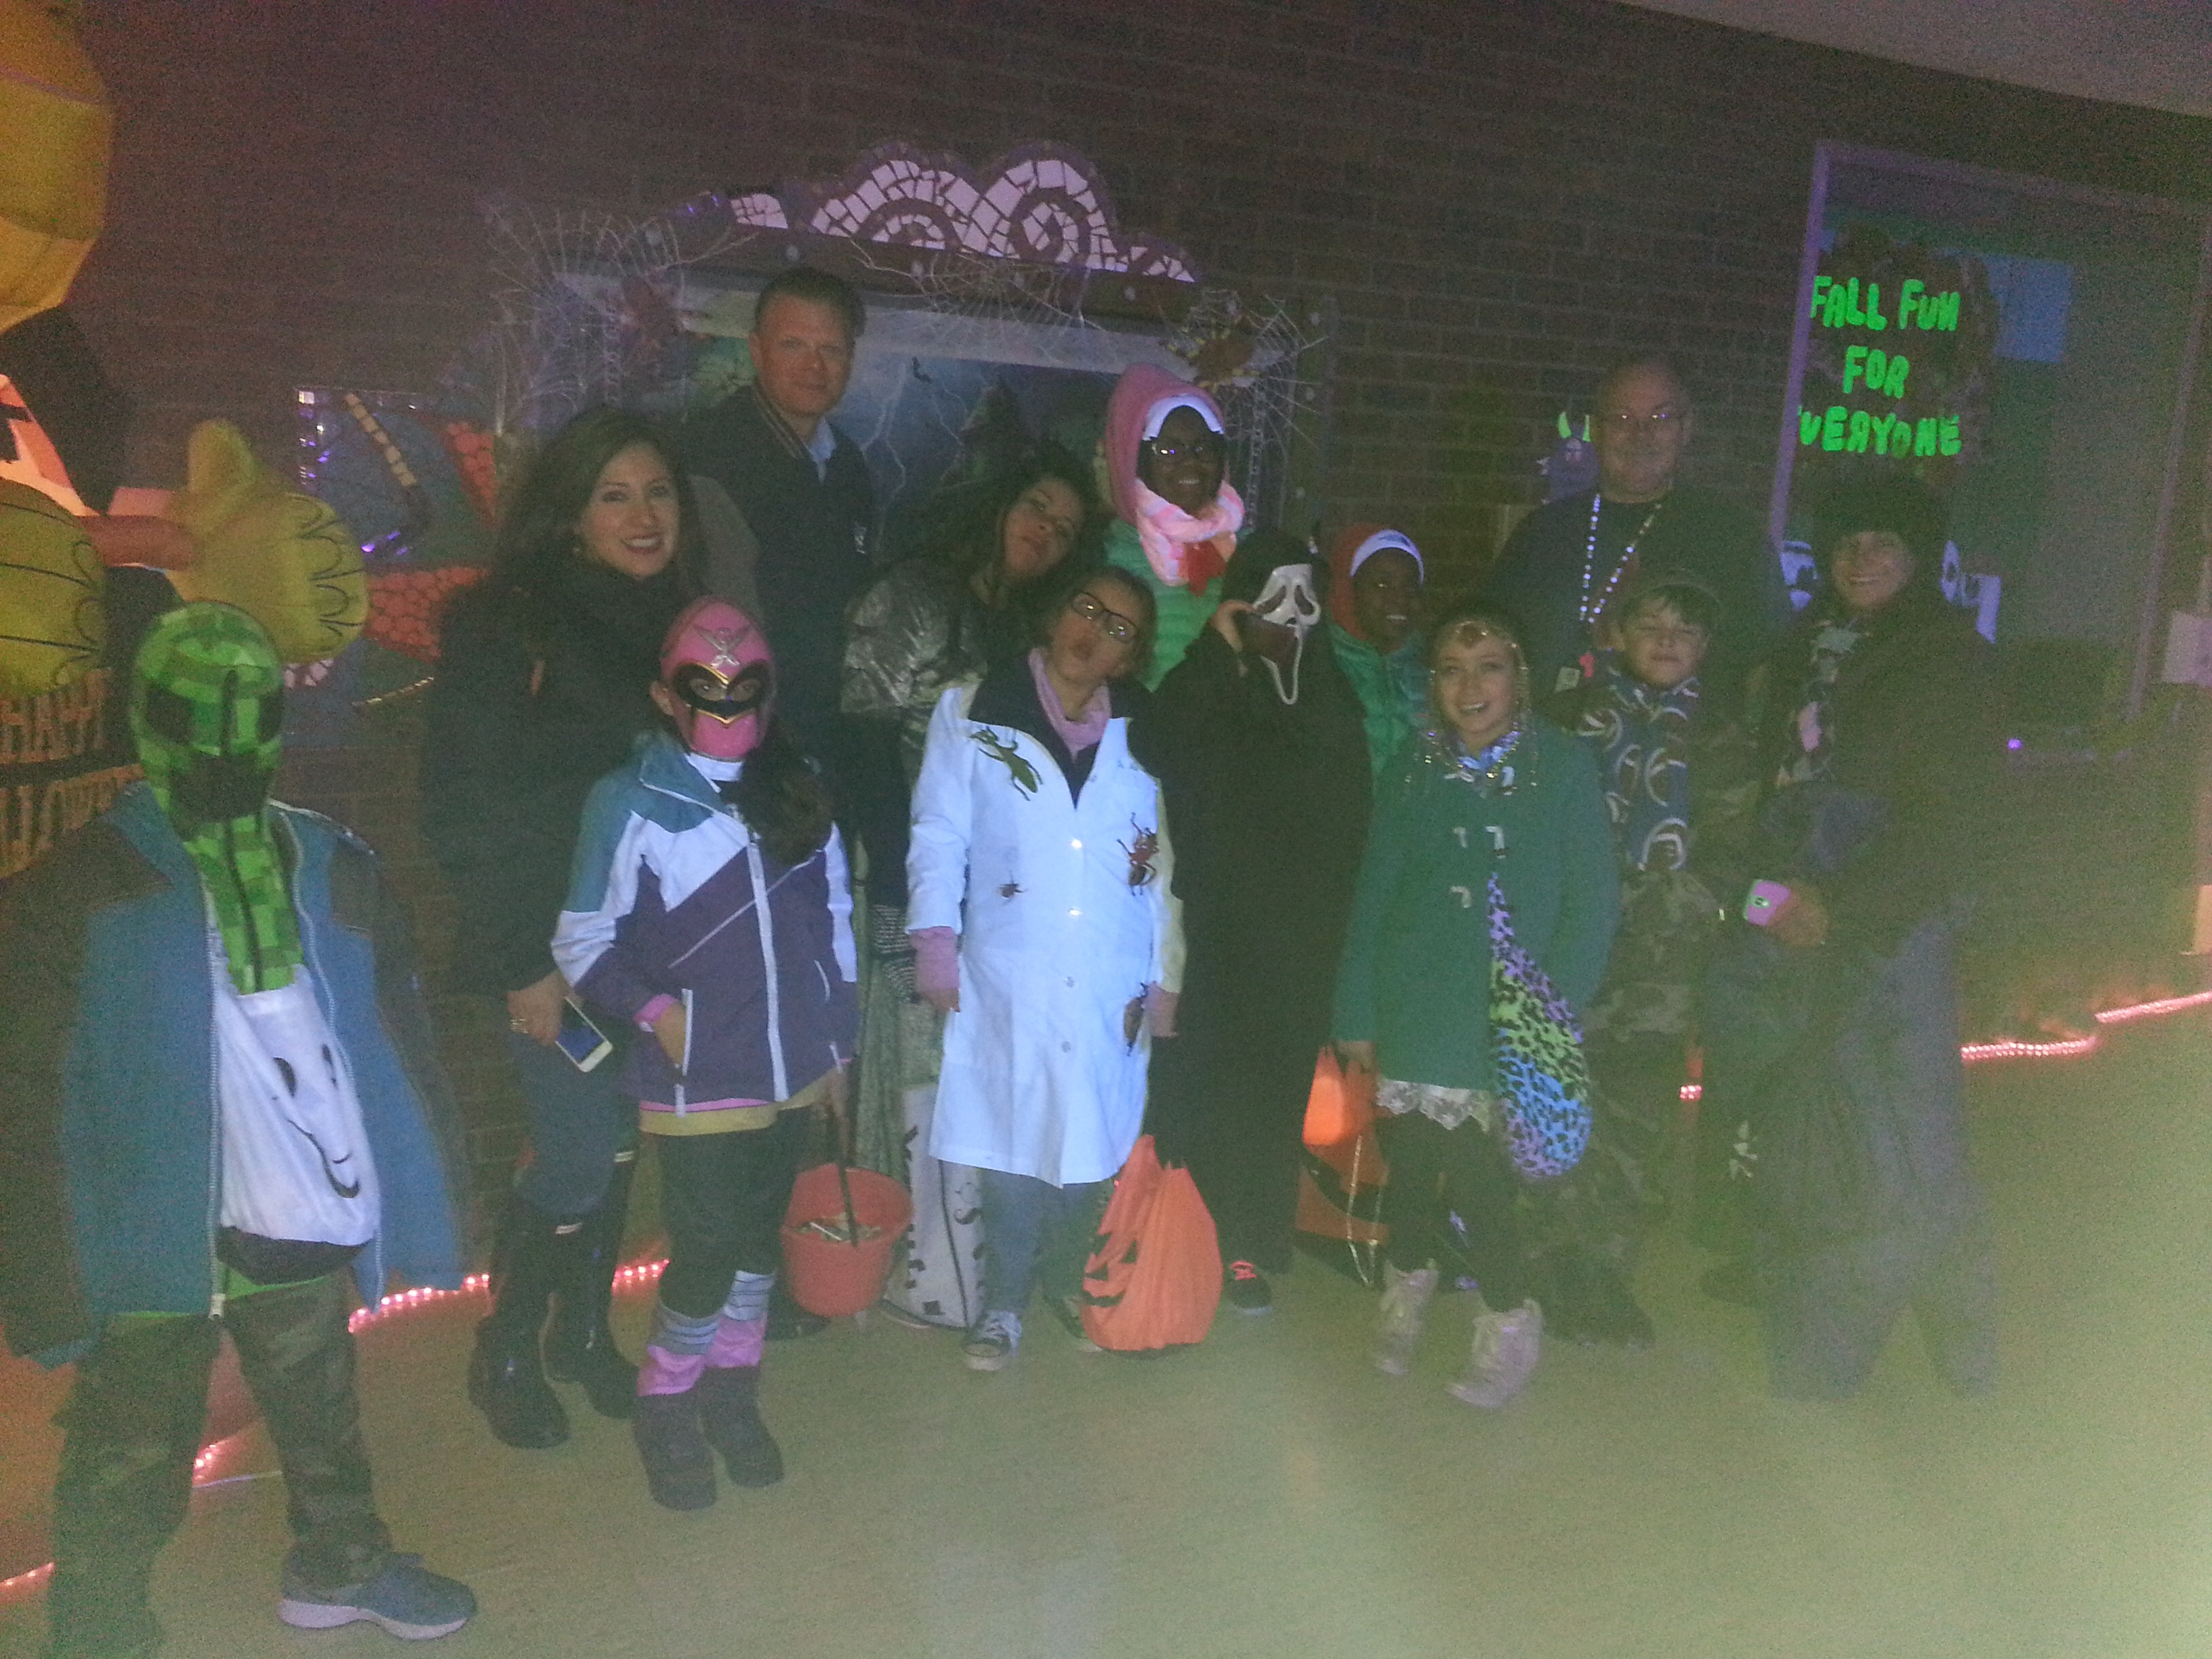 residents of the community stop by Smith Park for Halloween